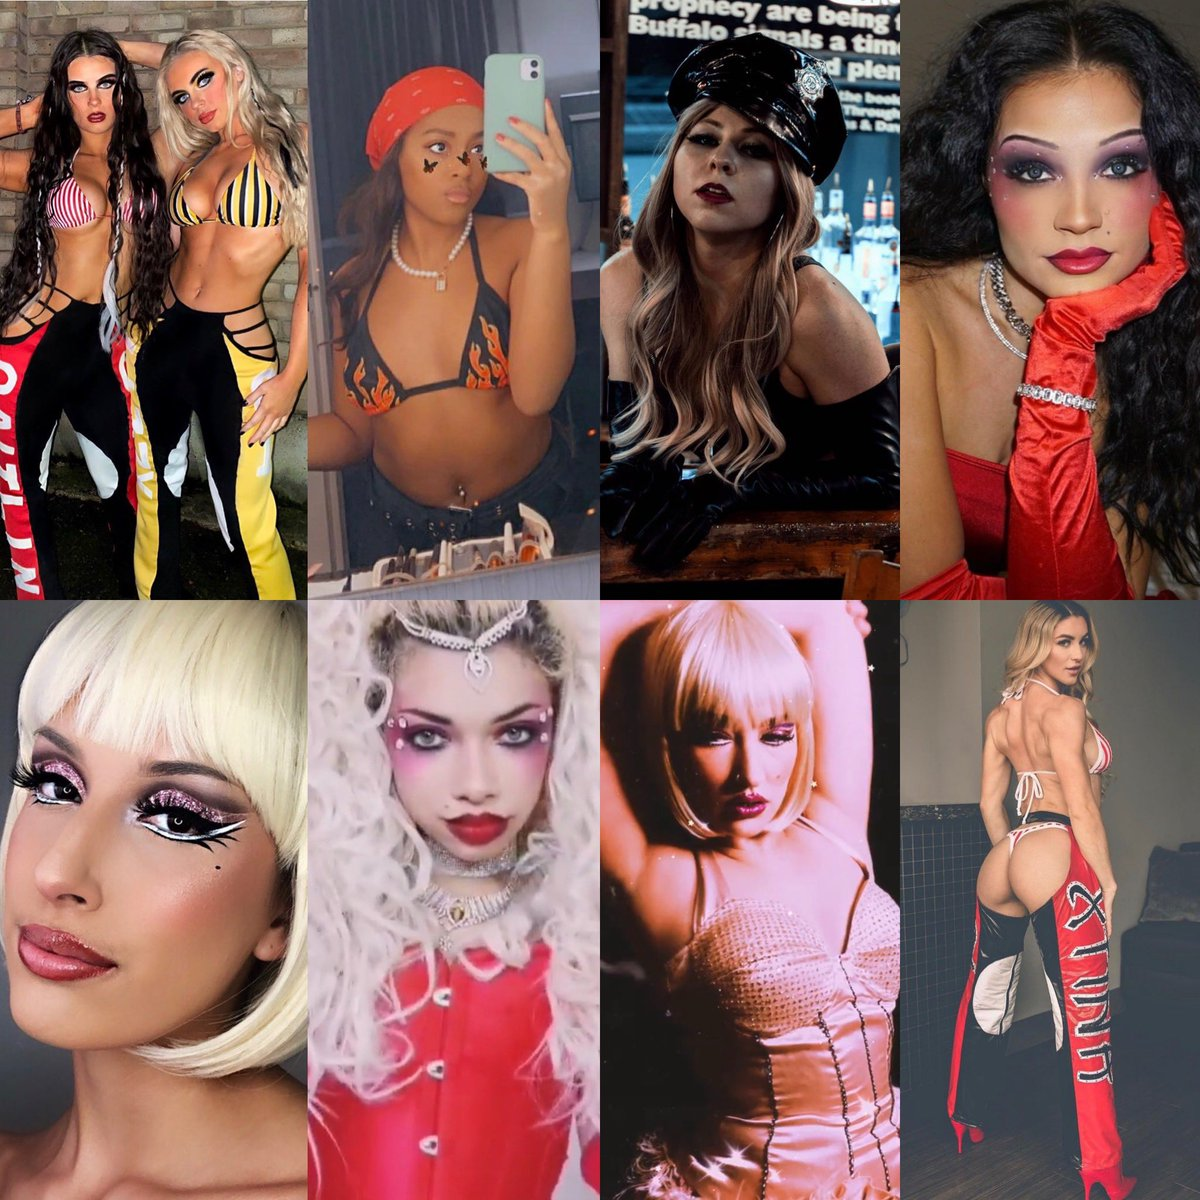 ICONIC looks were SERVED 🔥🎃